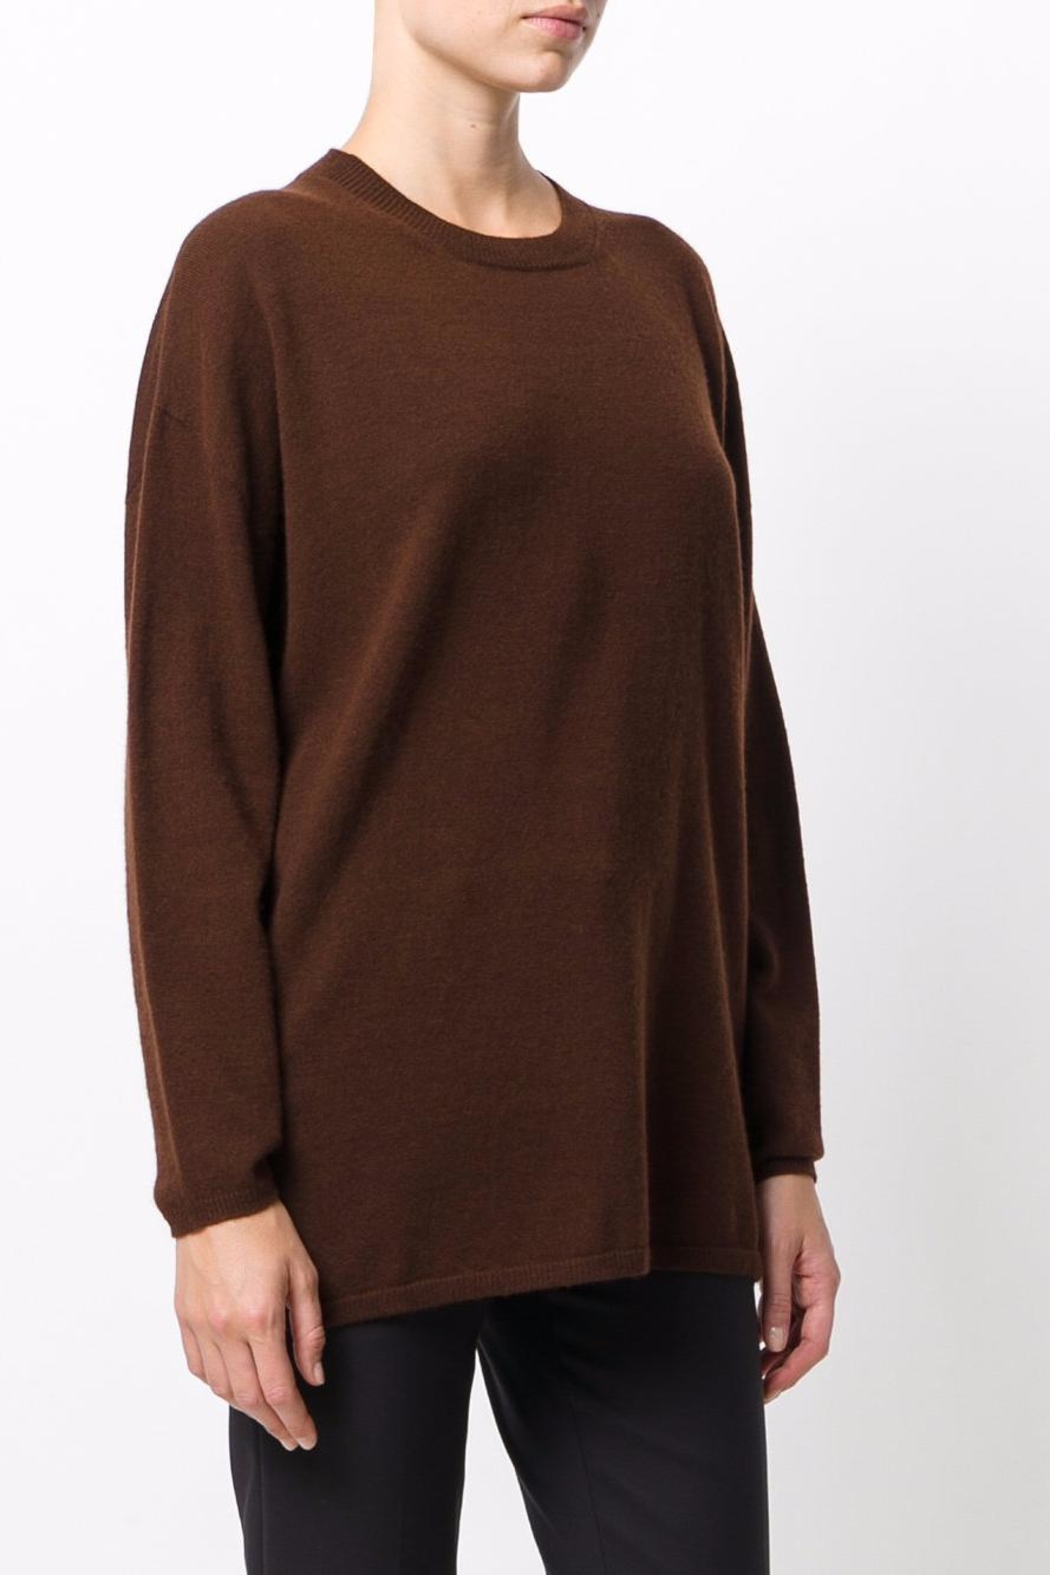 Roberto Collina Round Neck Sweater - Side Cropped Image